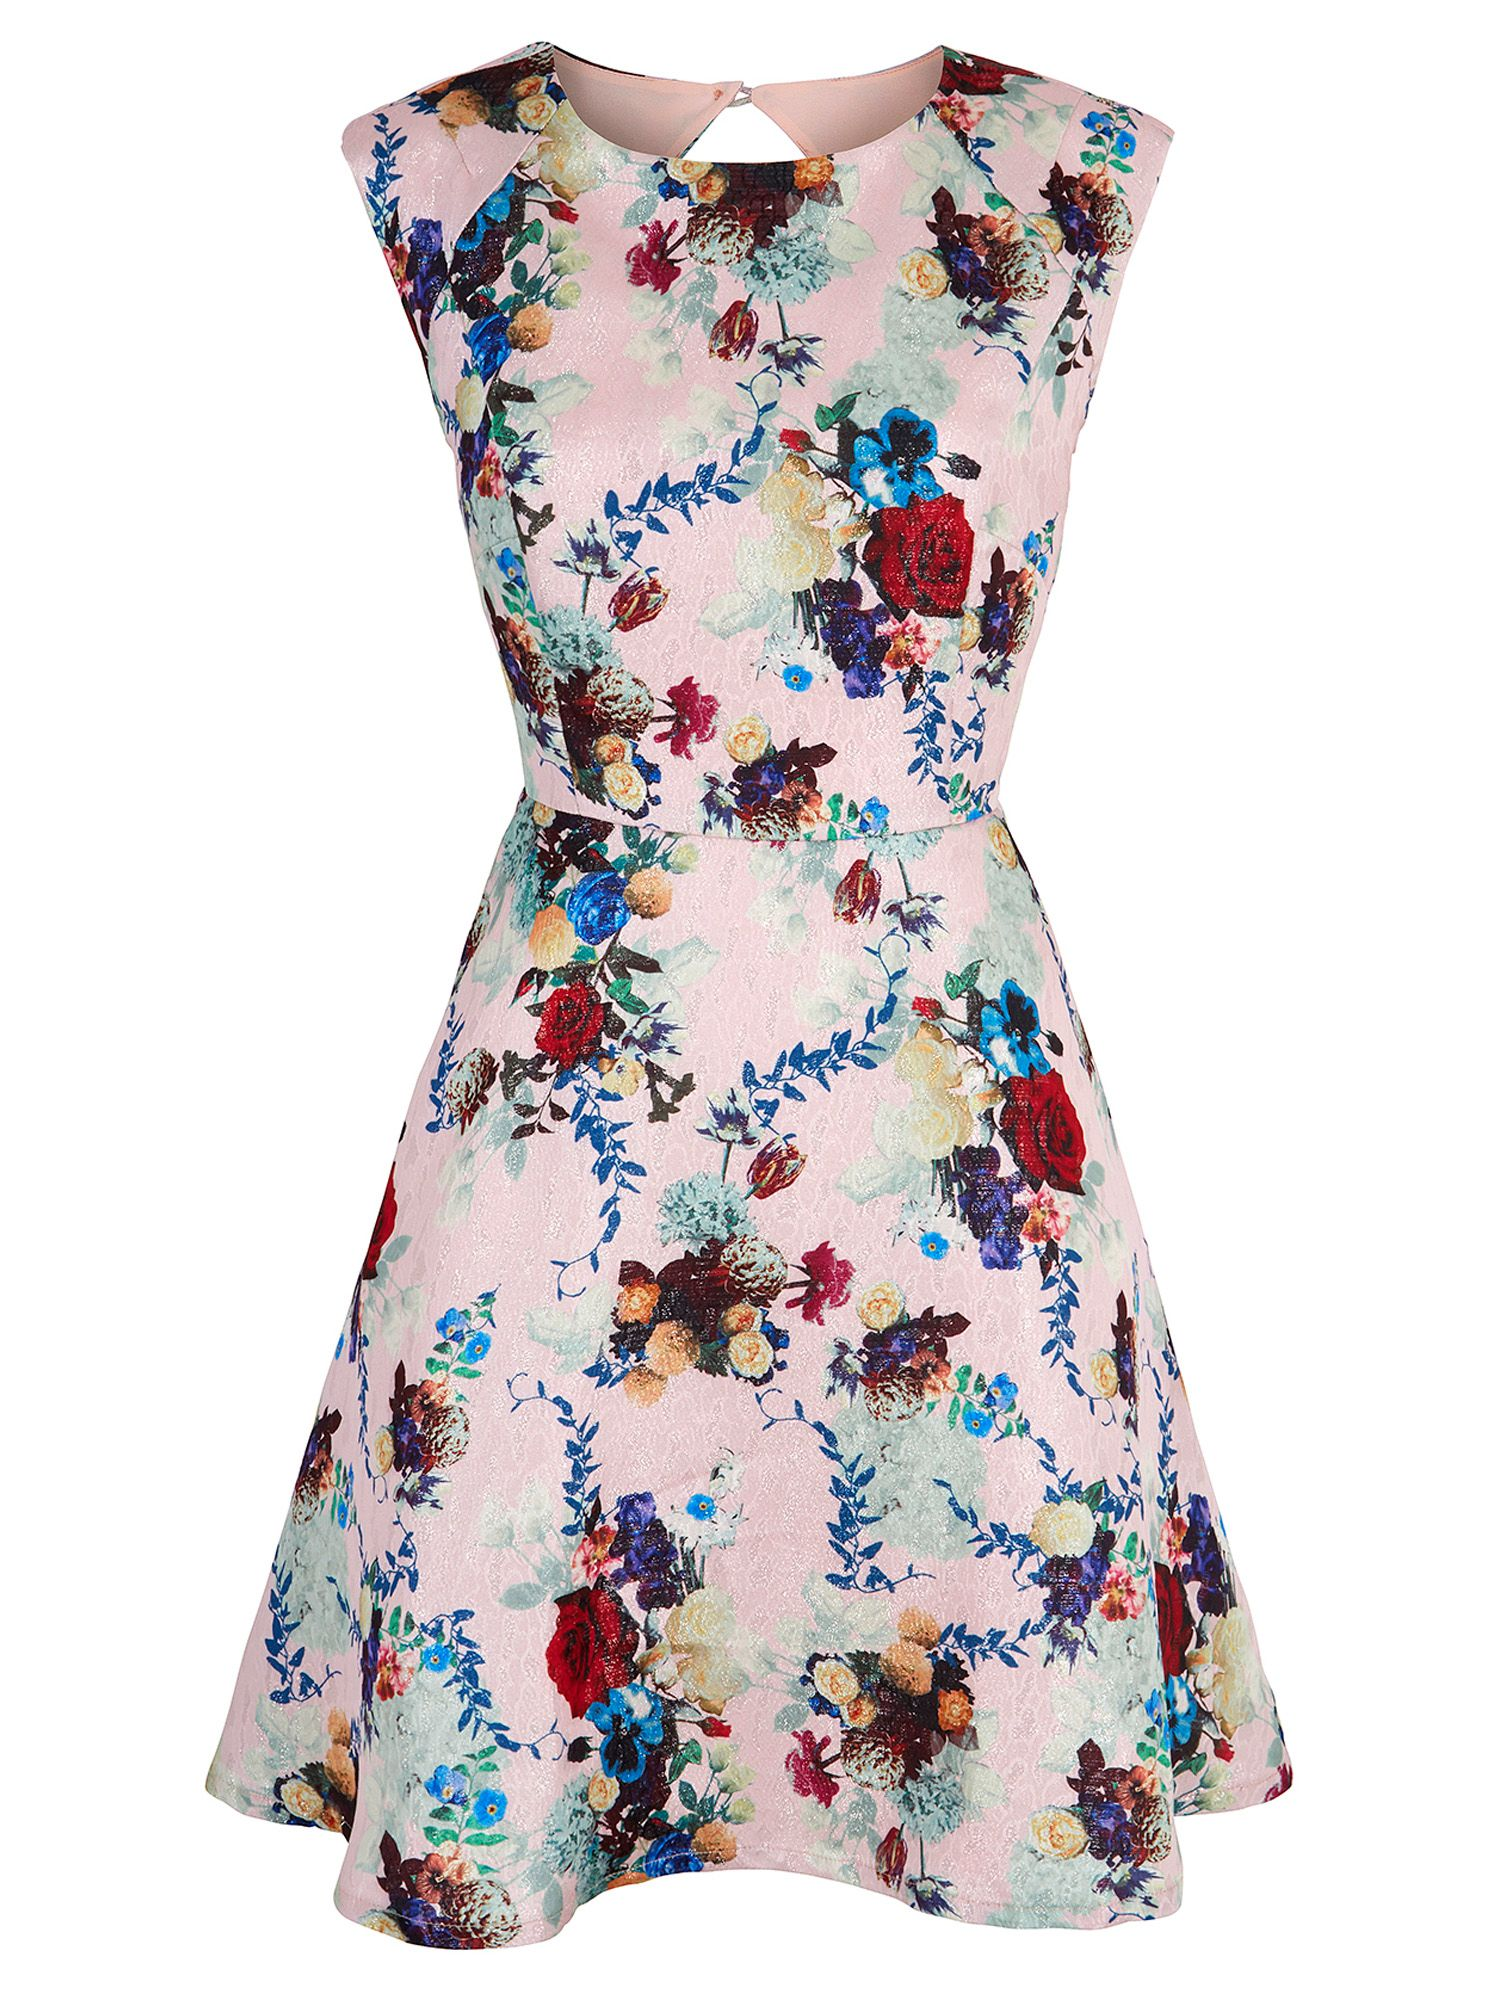 Yumi Winter Floral Print Cap Sleeve Dress, Pink